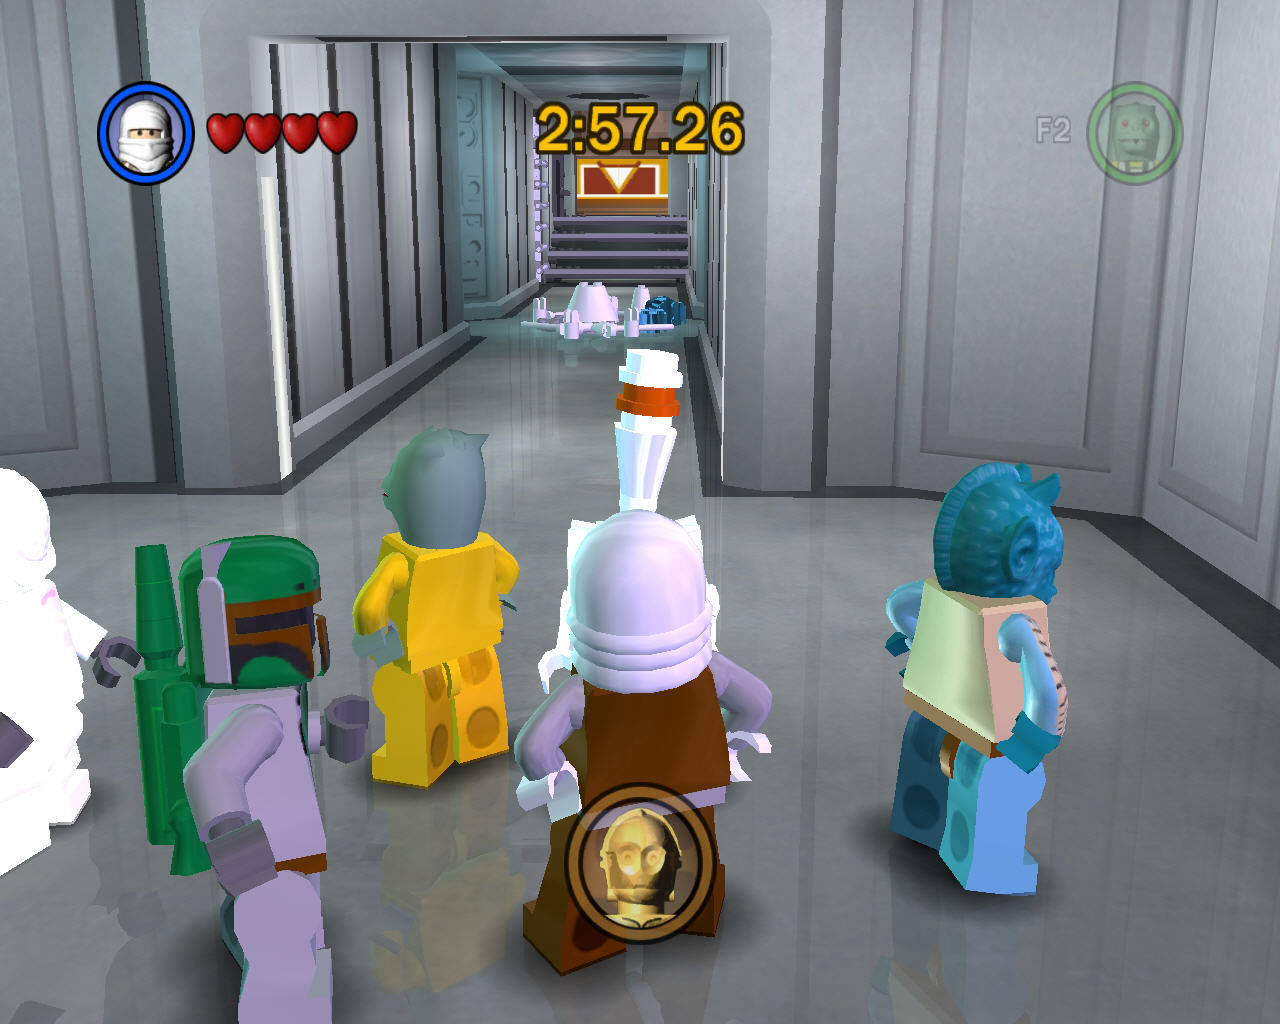 Lego Star Wars Ii The Original Trilogy Screenshots For Windows